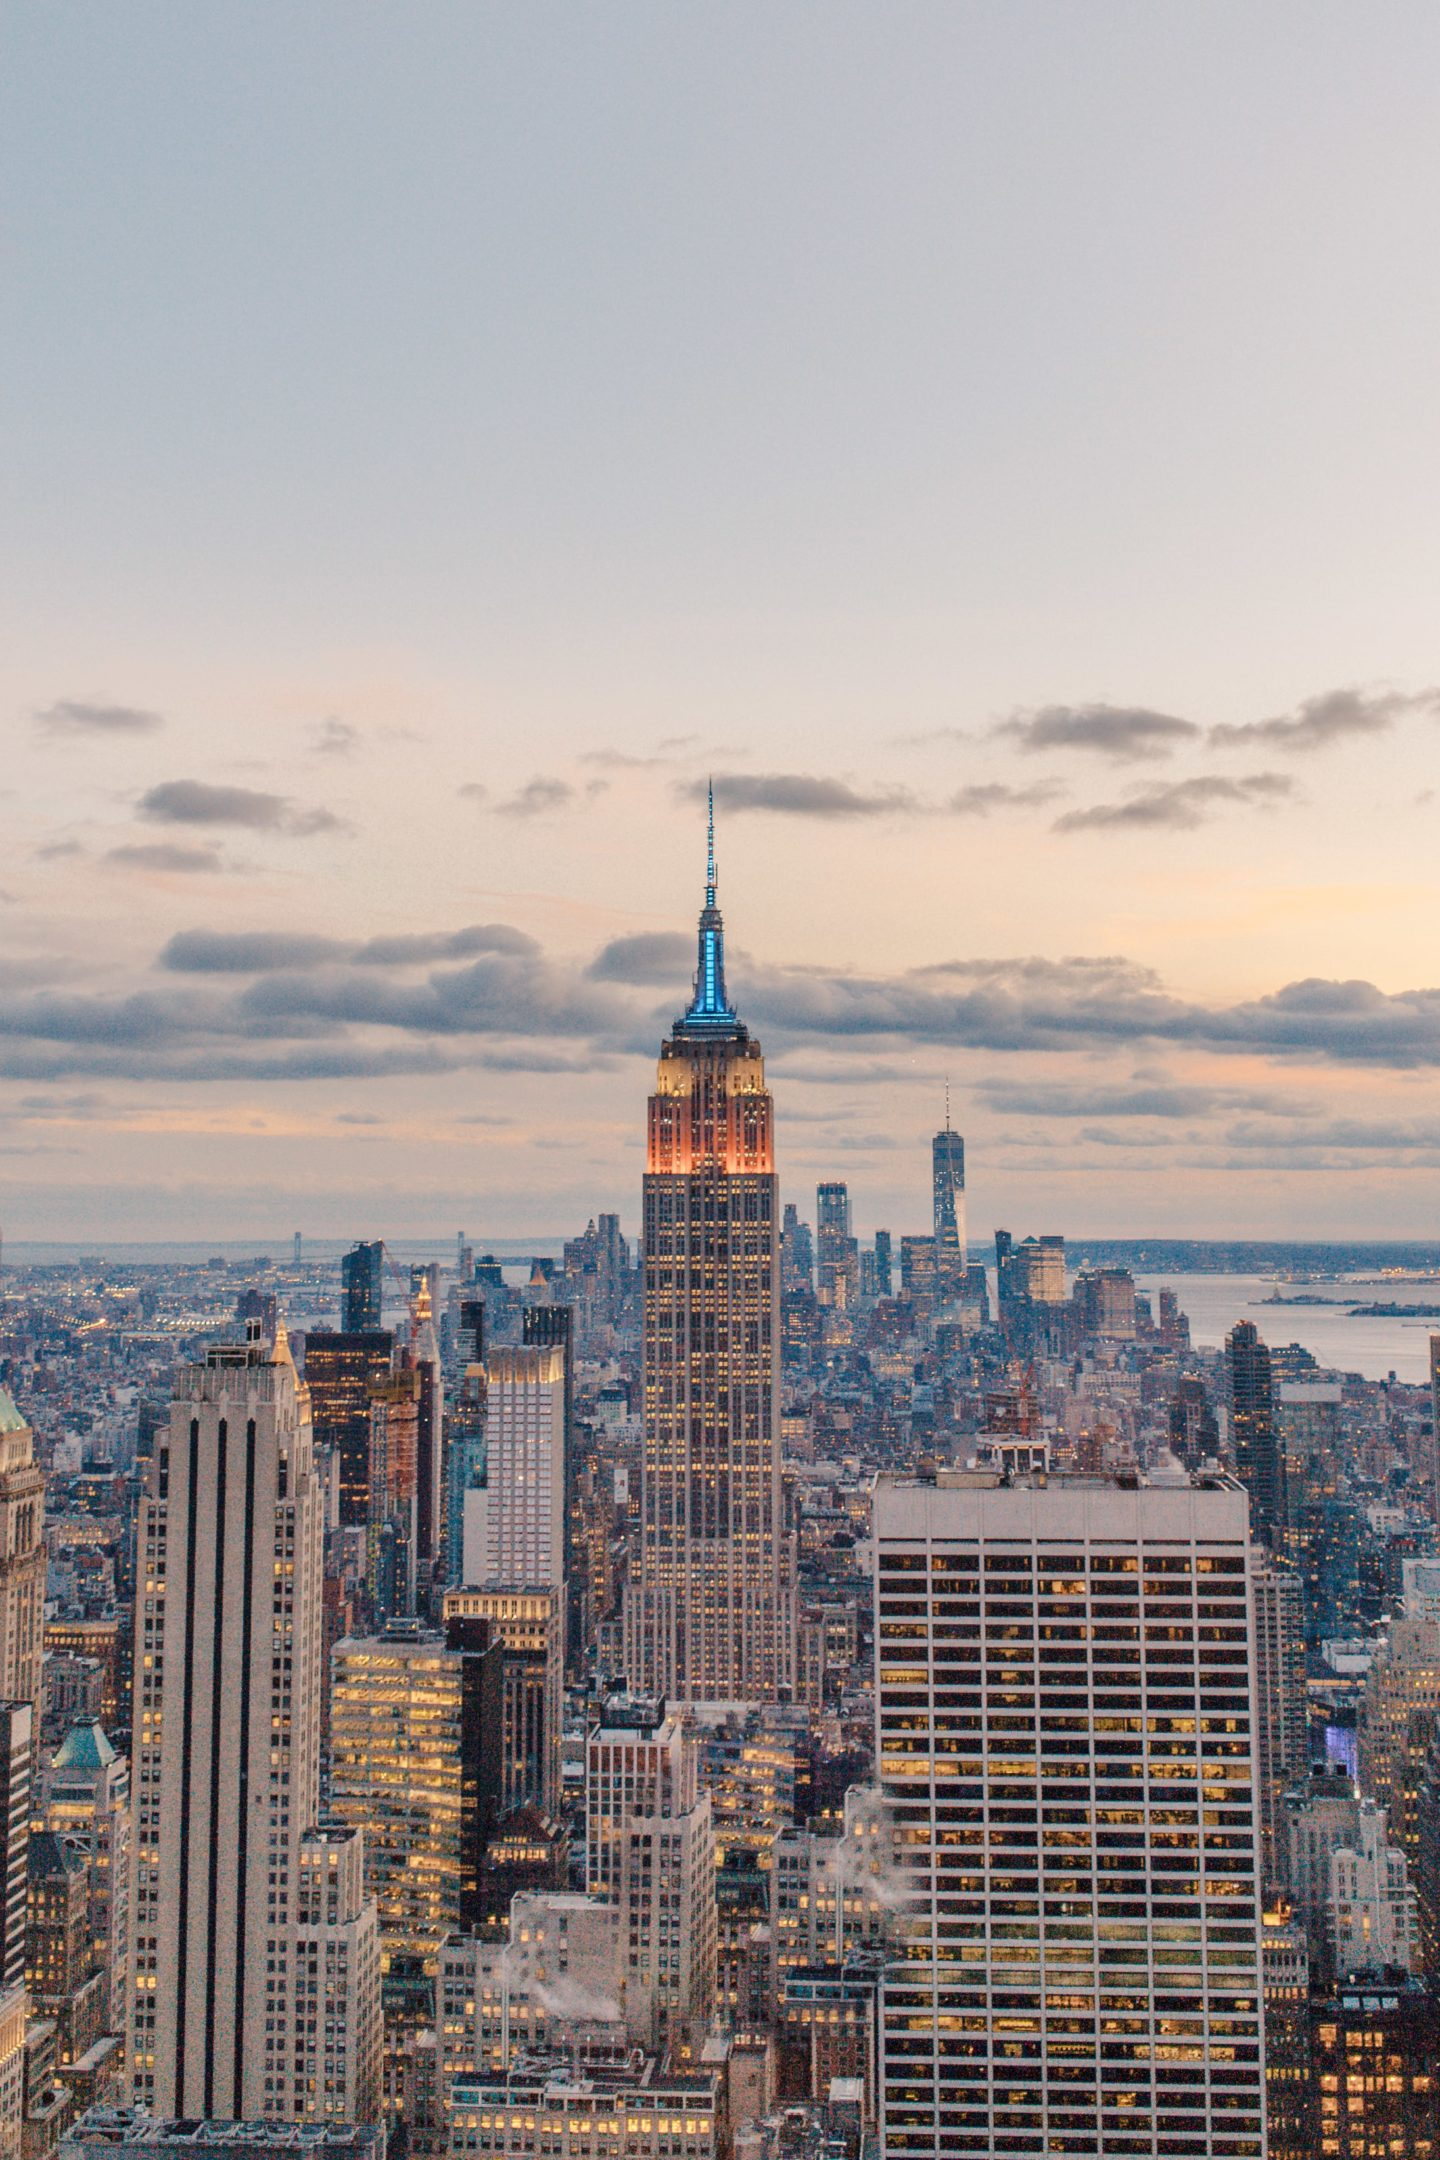 Photo Spots of the Empire State Building in NYC Instagram Approved | Dana Berez NYC Photography Ideas NYC rooftops ROCKEFELLER CENTER